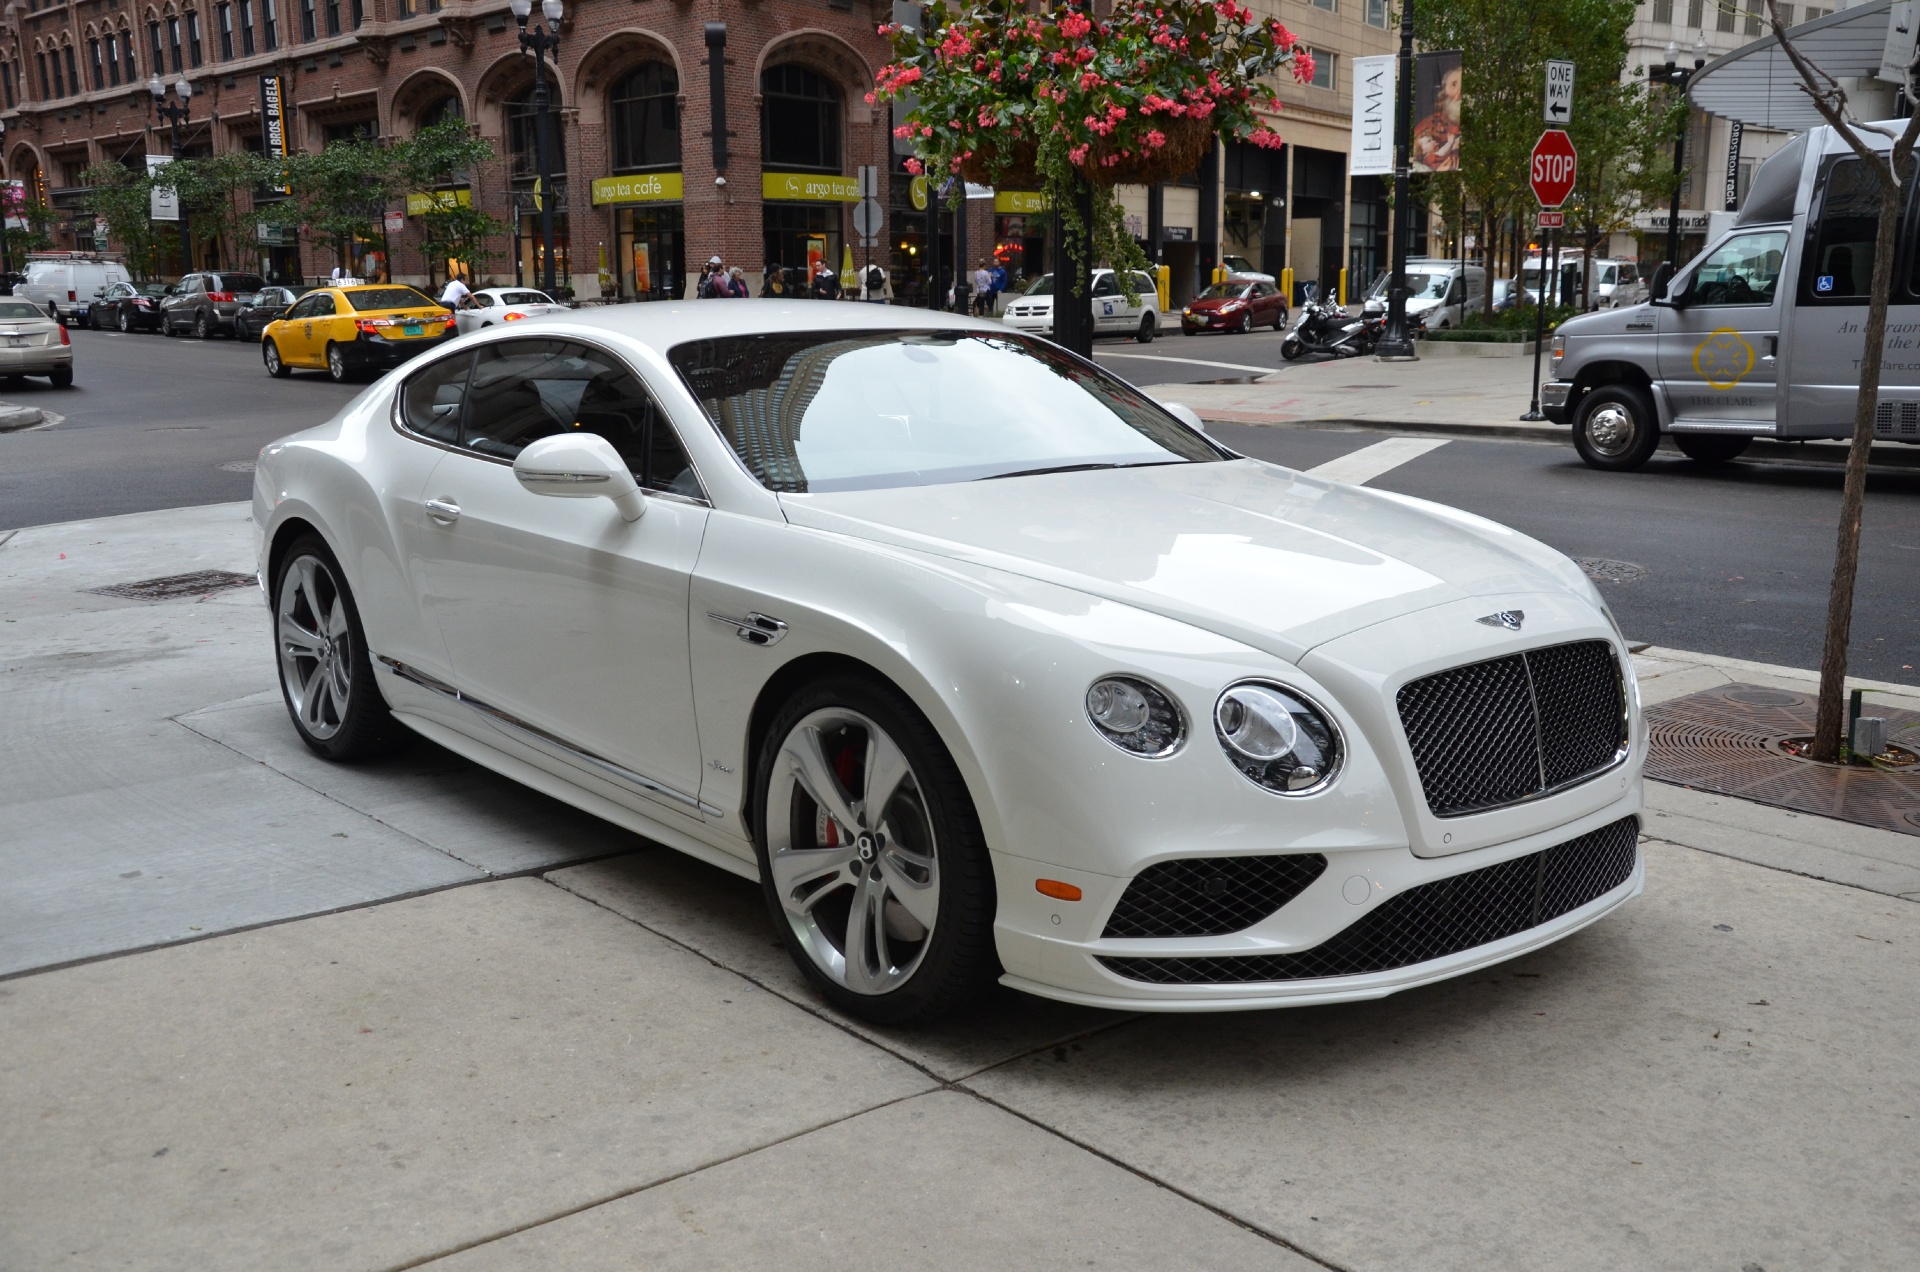 2016 bentley continental gt speed stock b740 s for sale near chicago il il bentley dealer. Black Bedroom Furniture Sets. Home Design Ideas